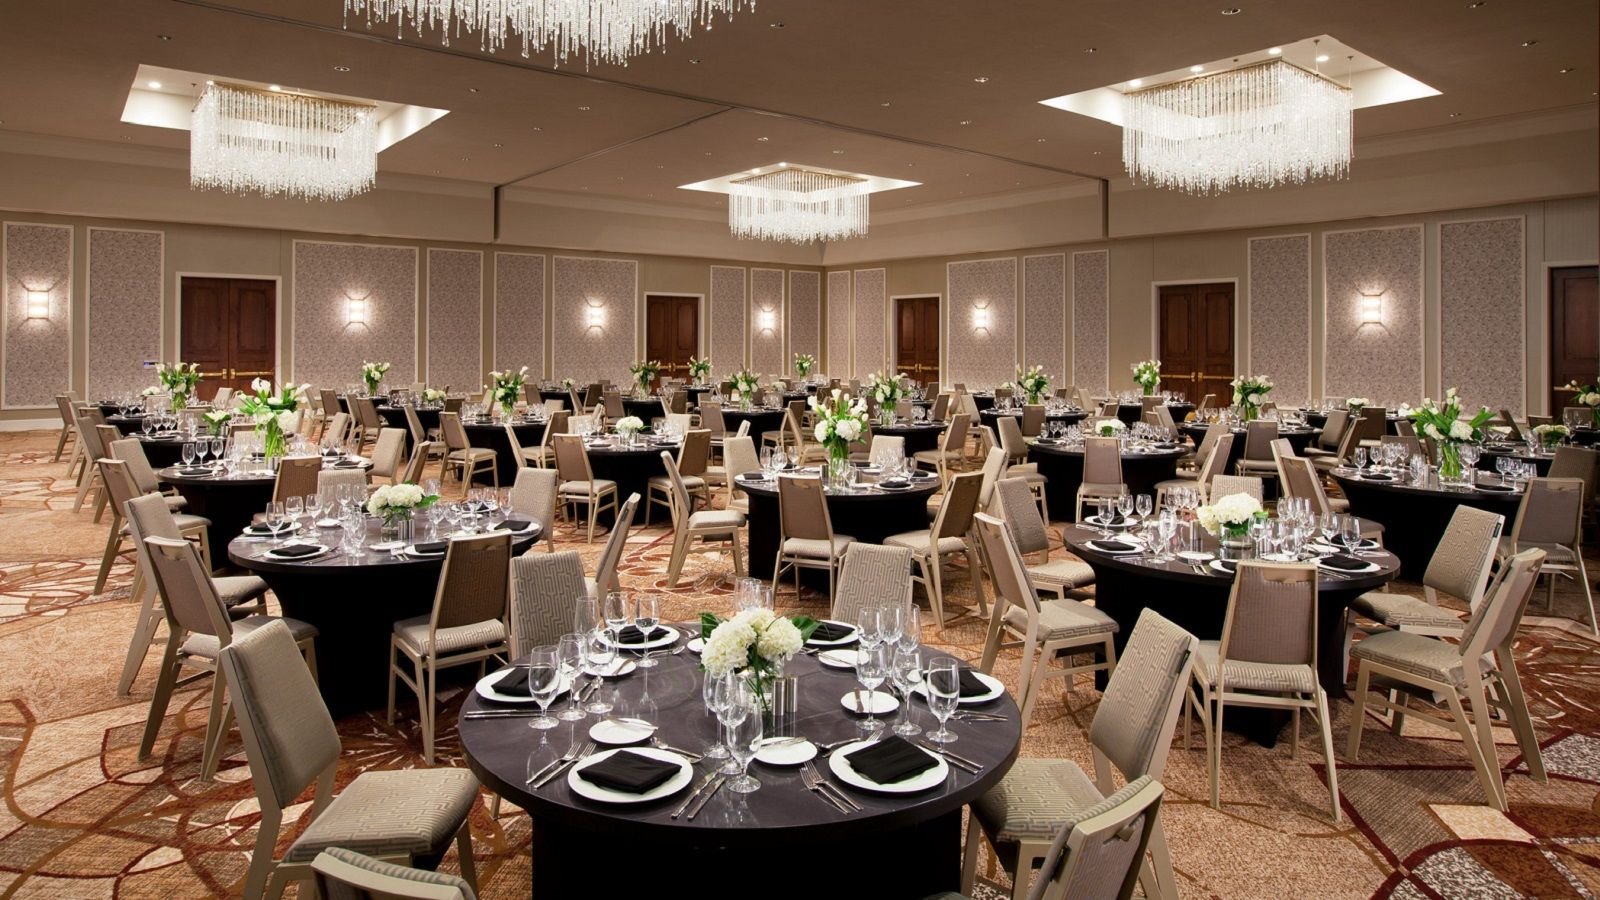 McKinney Events - Ballroom